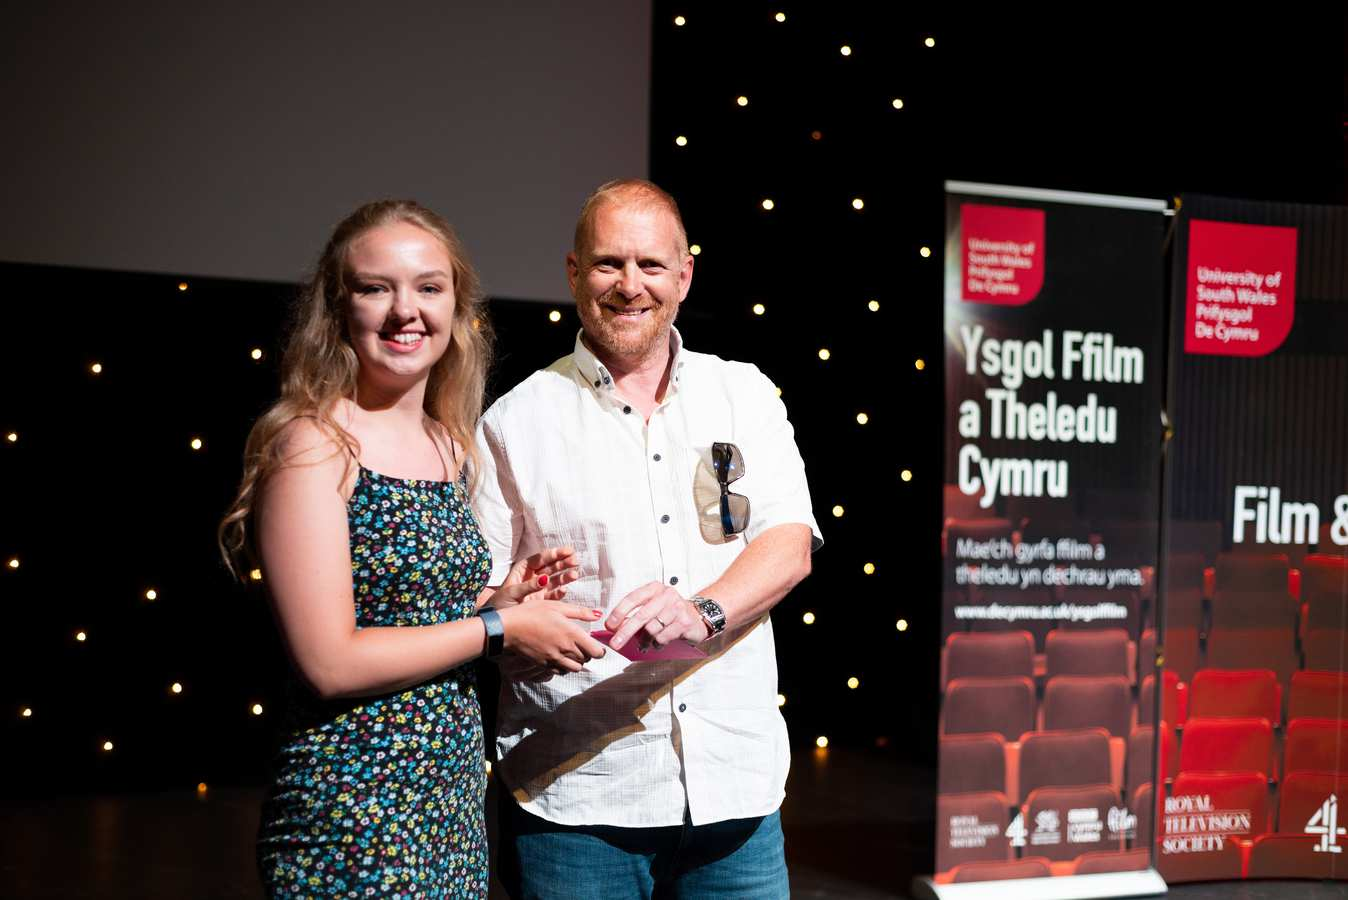 Belinda Humphries, Most Innovative 16-19 with Rich Moss, Managing Director of Gorilla. FTSW awards, July 2019